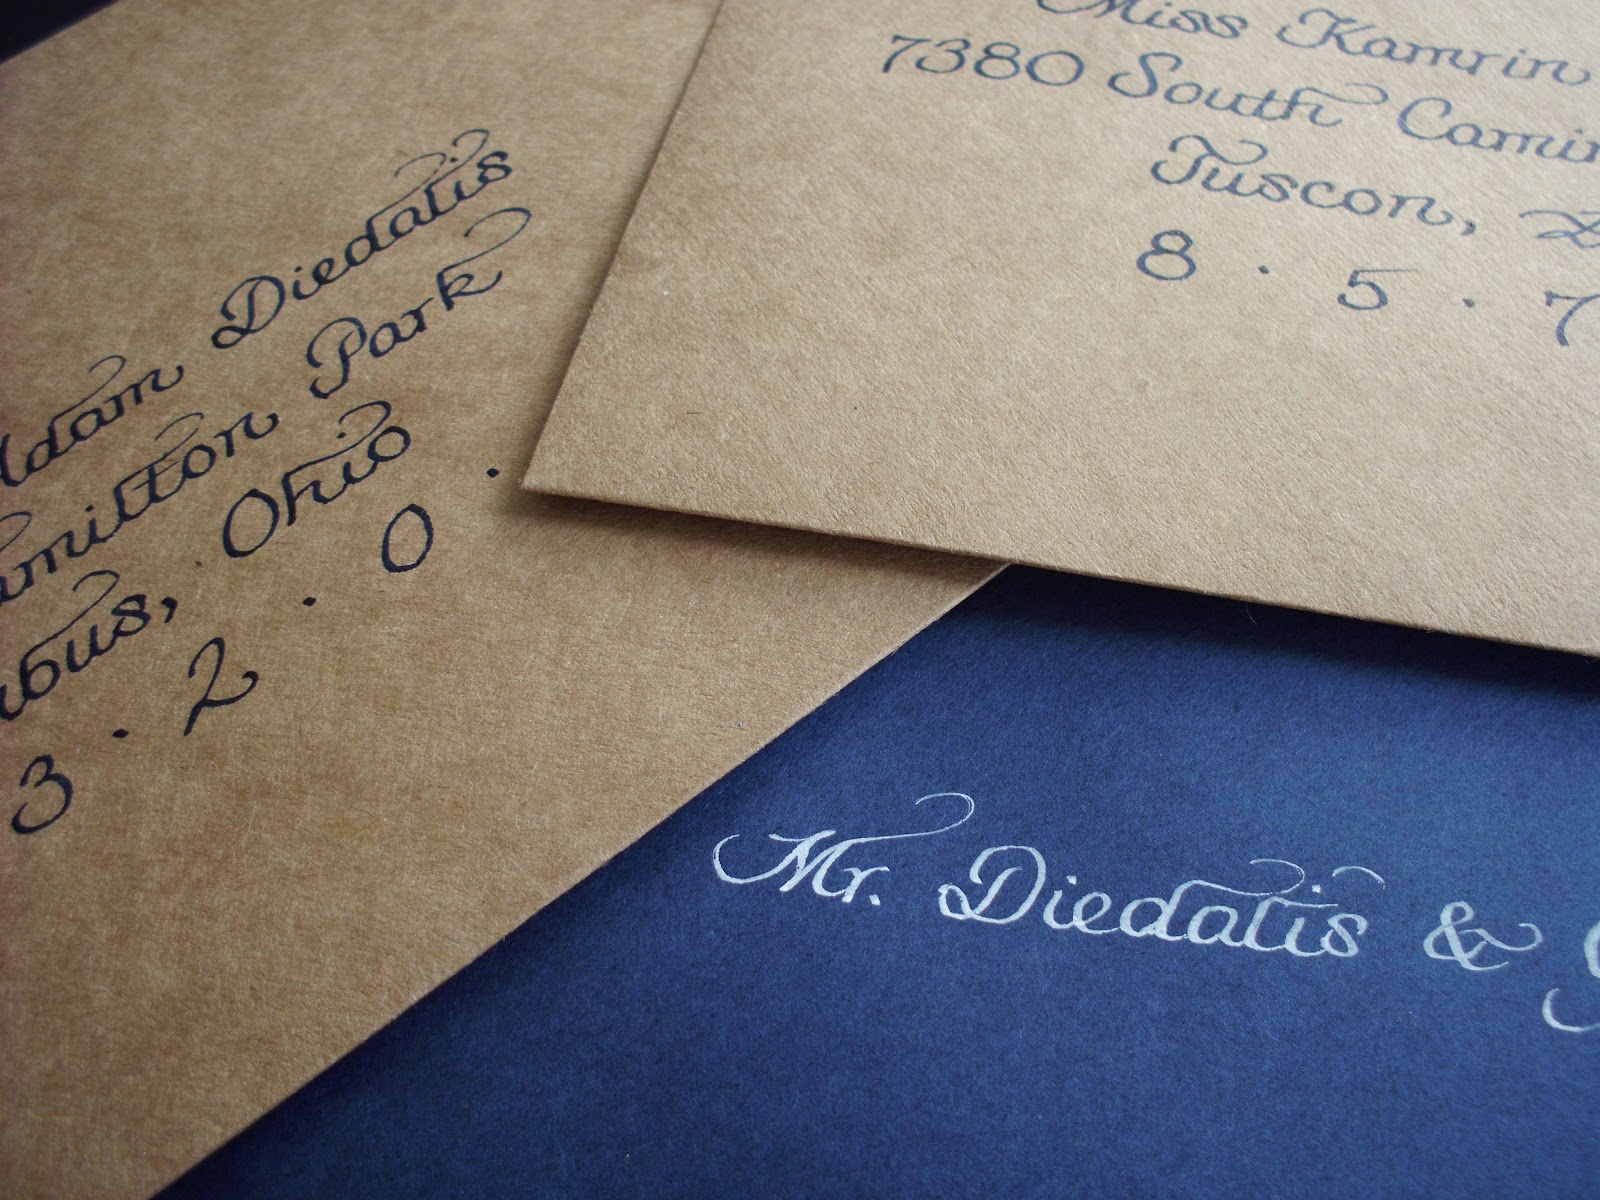 What Are Inner Envelopes For Wedding Invitations: From The Ash Tree Meadow...: Calligraphy Addressing